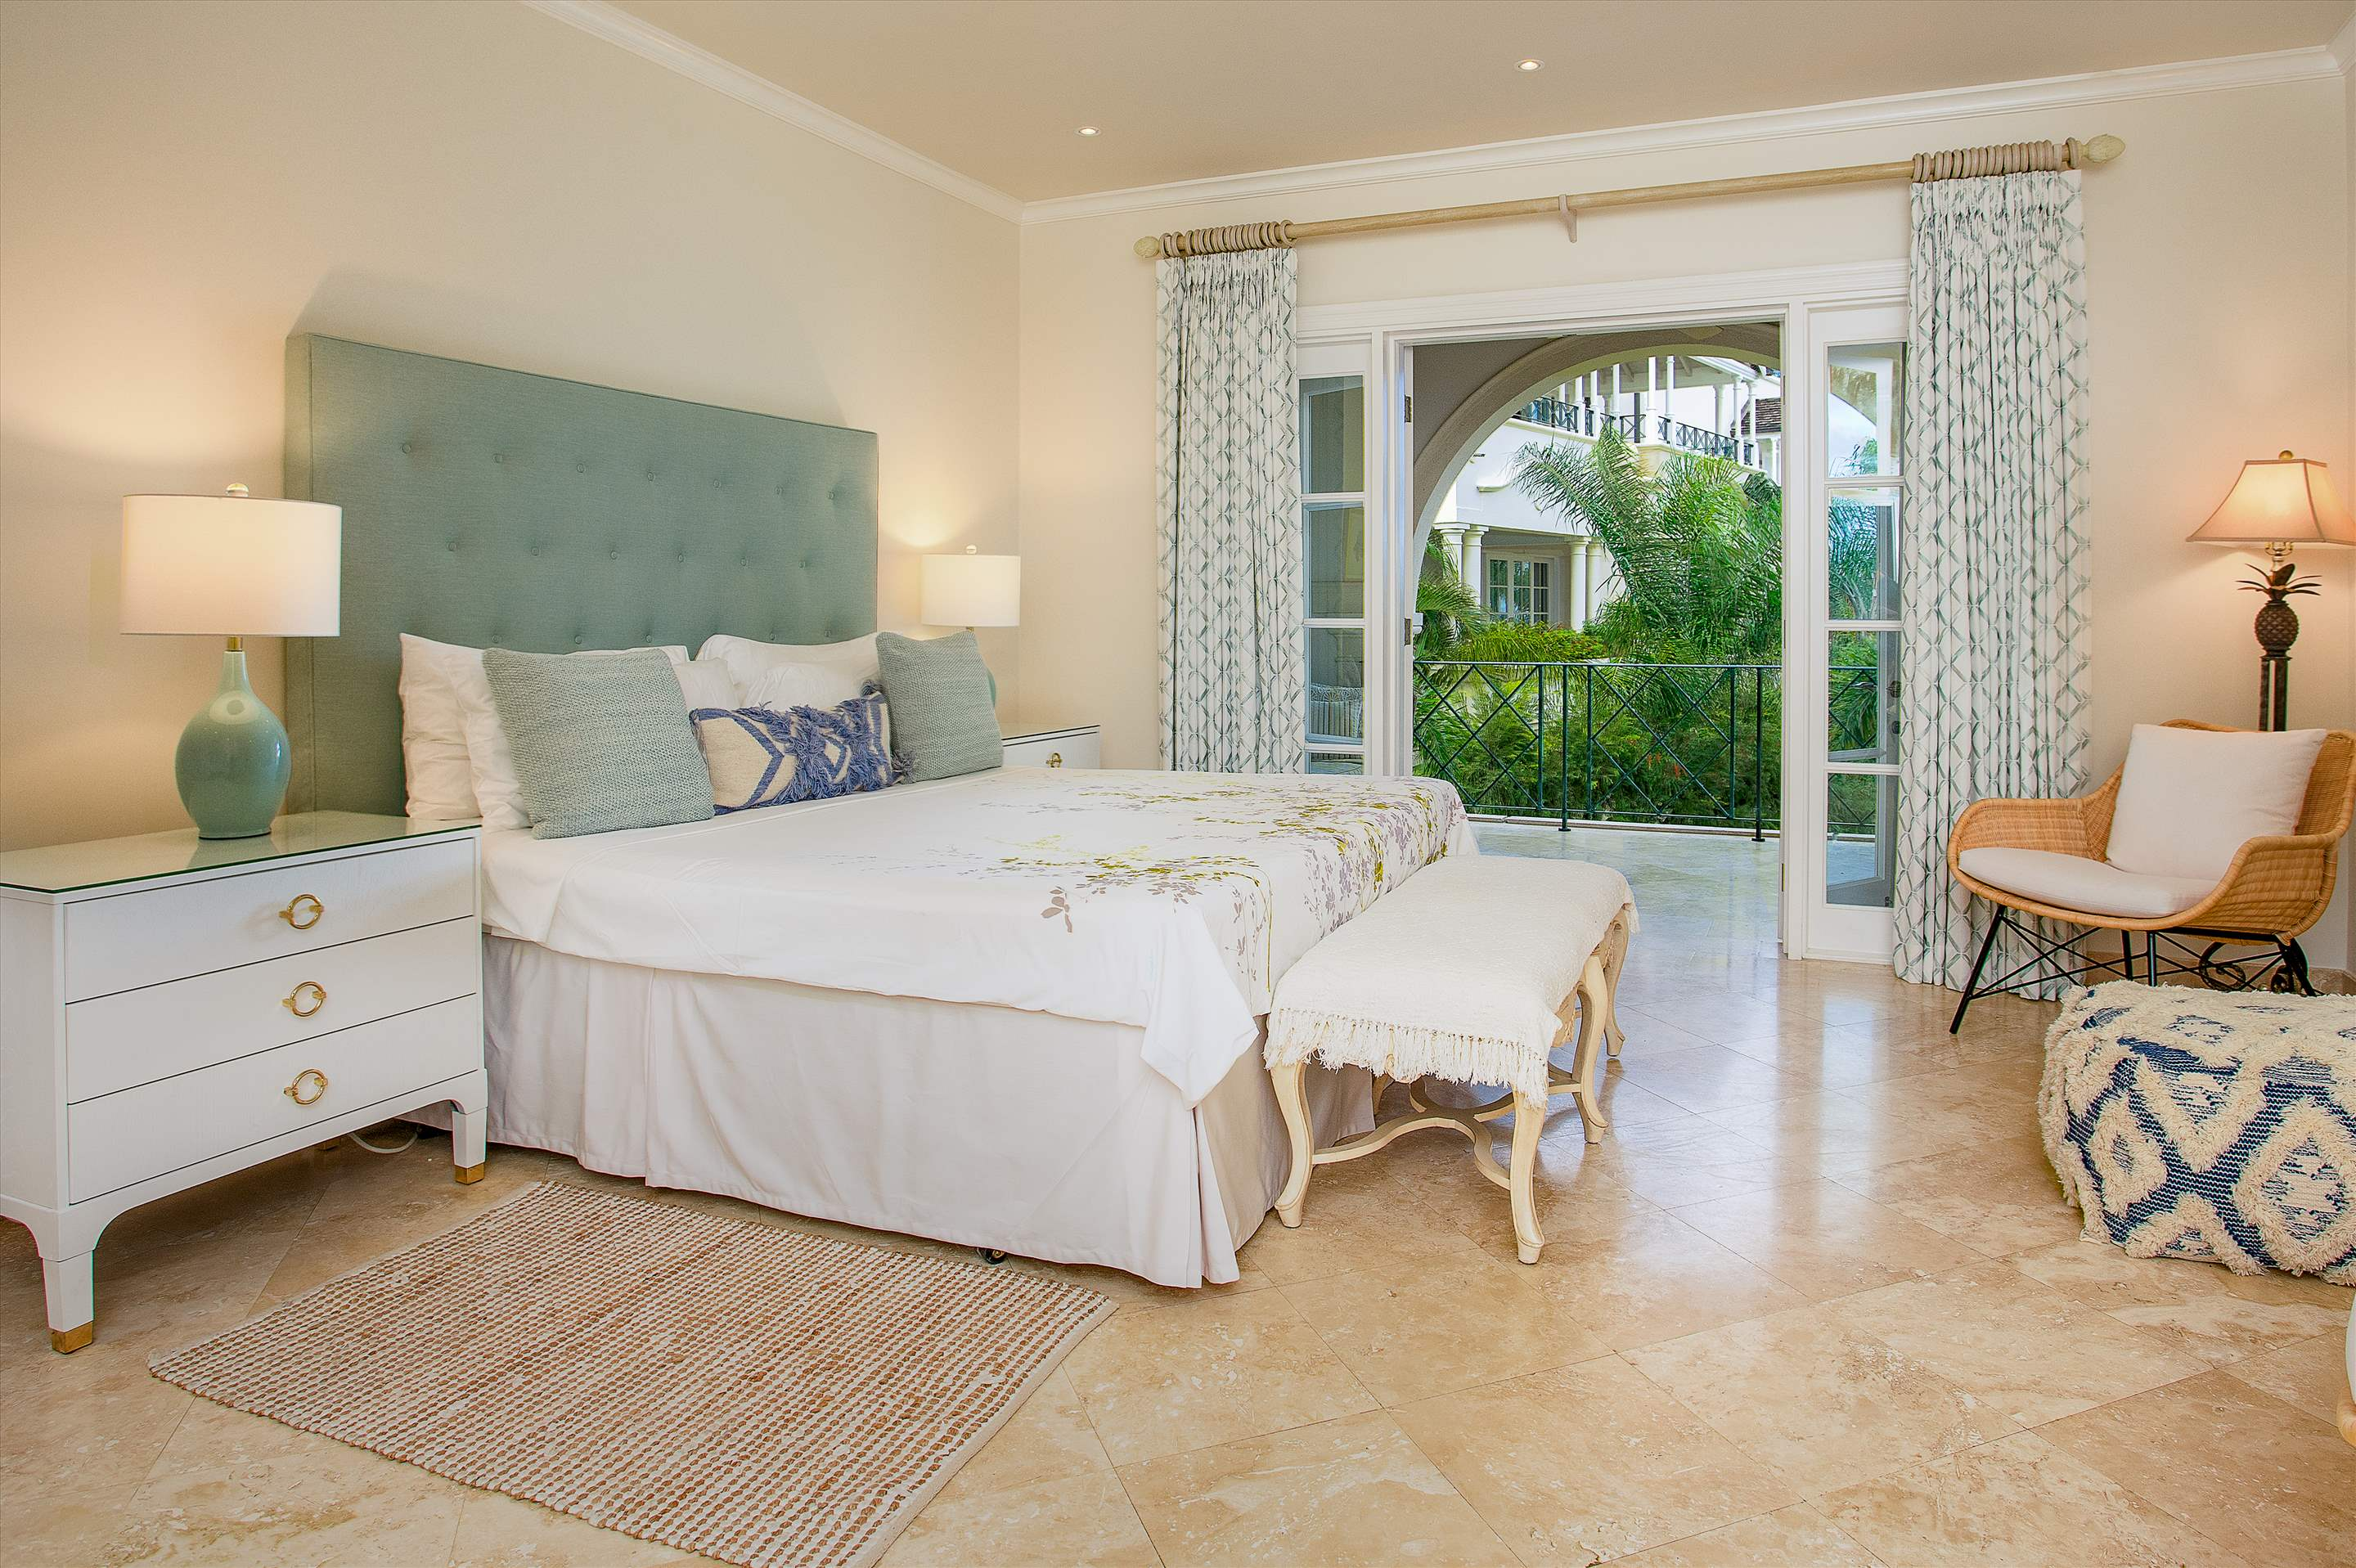 Schooner Bay 205, Two Bedroom rate, 2 bedroom apartment in St. James & West Coast, Barbados Photo #7